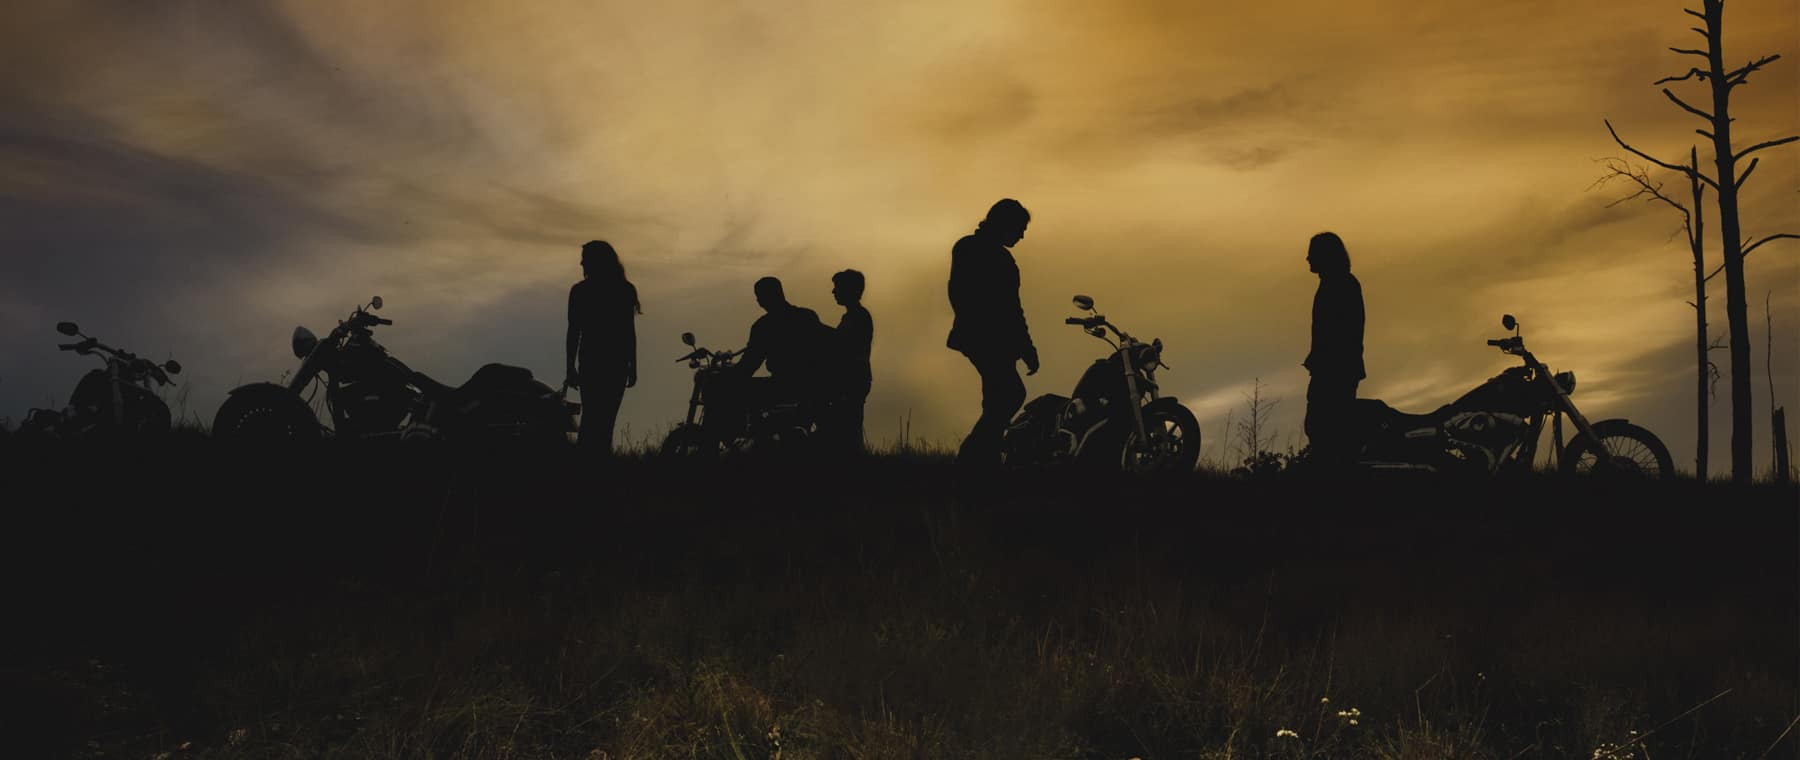 a bunch of people standing around motorcycles at dusk